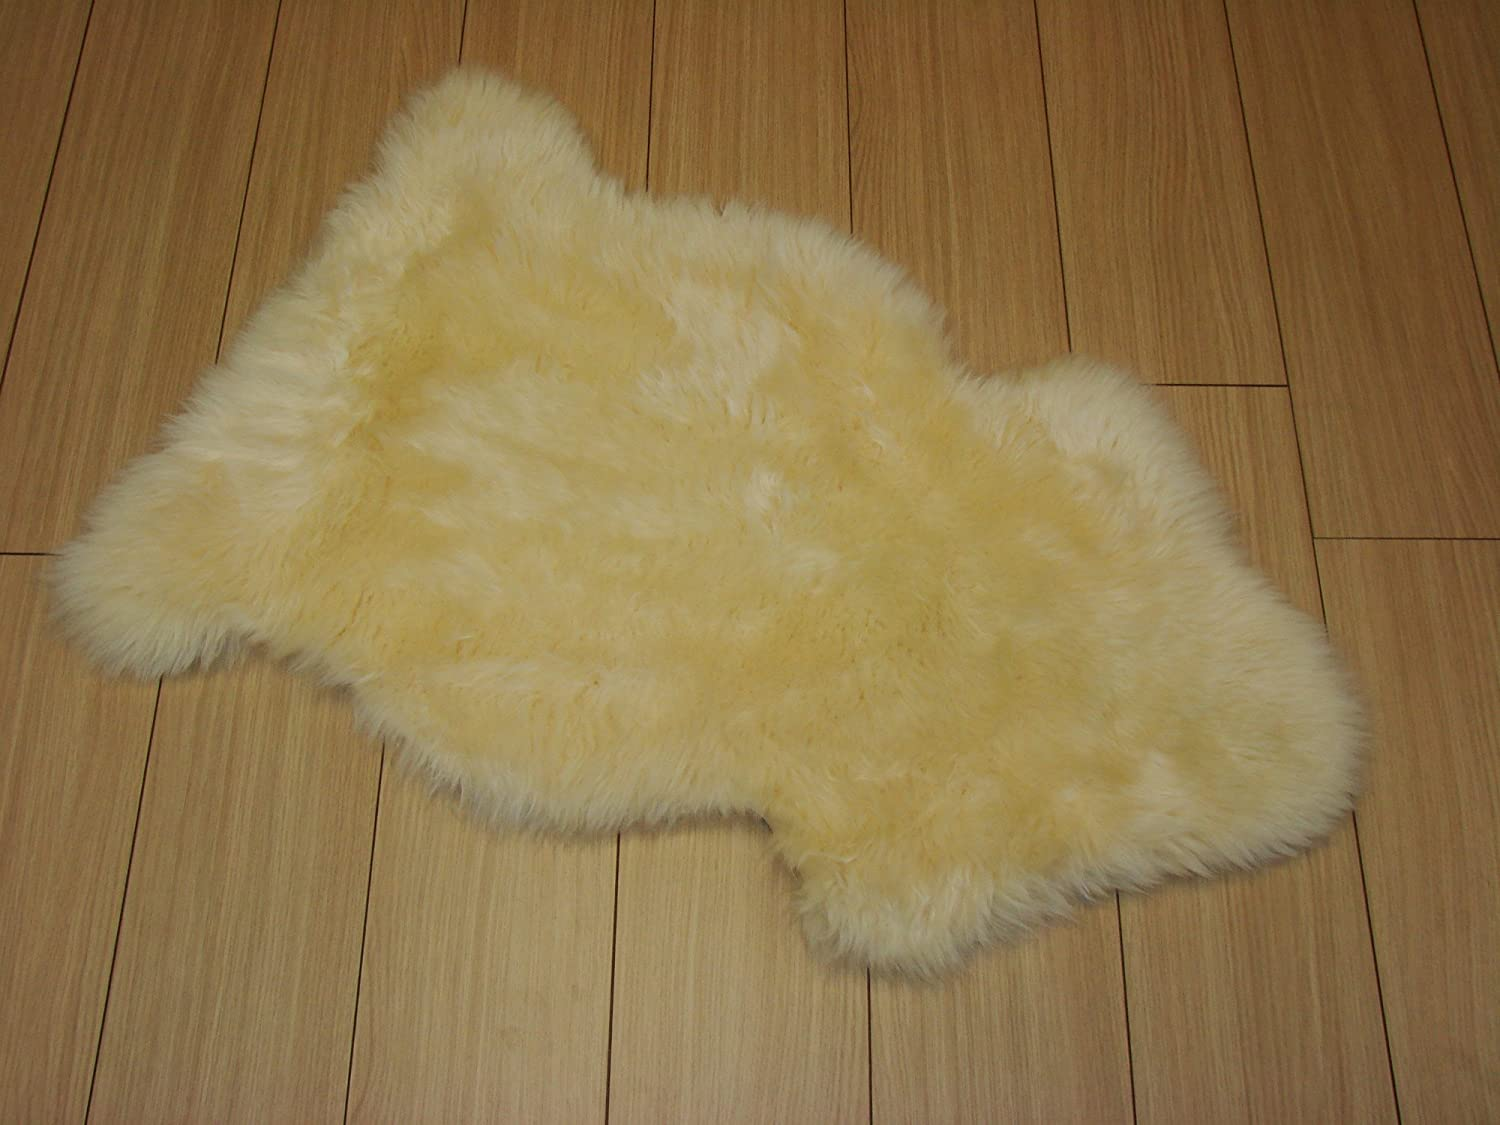 Amazon.com: Bowron One Pelt Gold Star alfombra: Baby